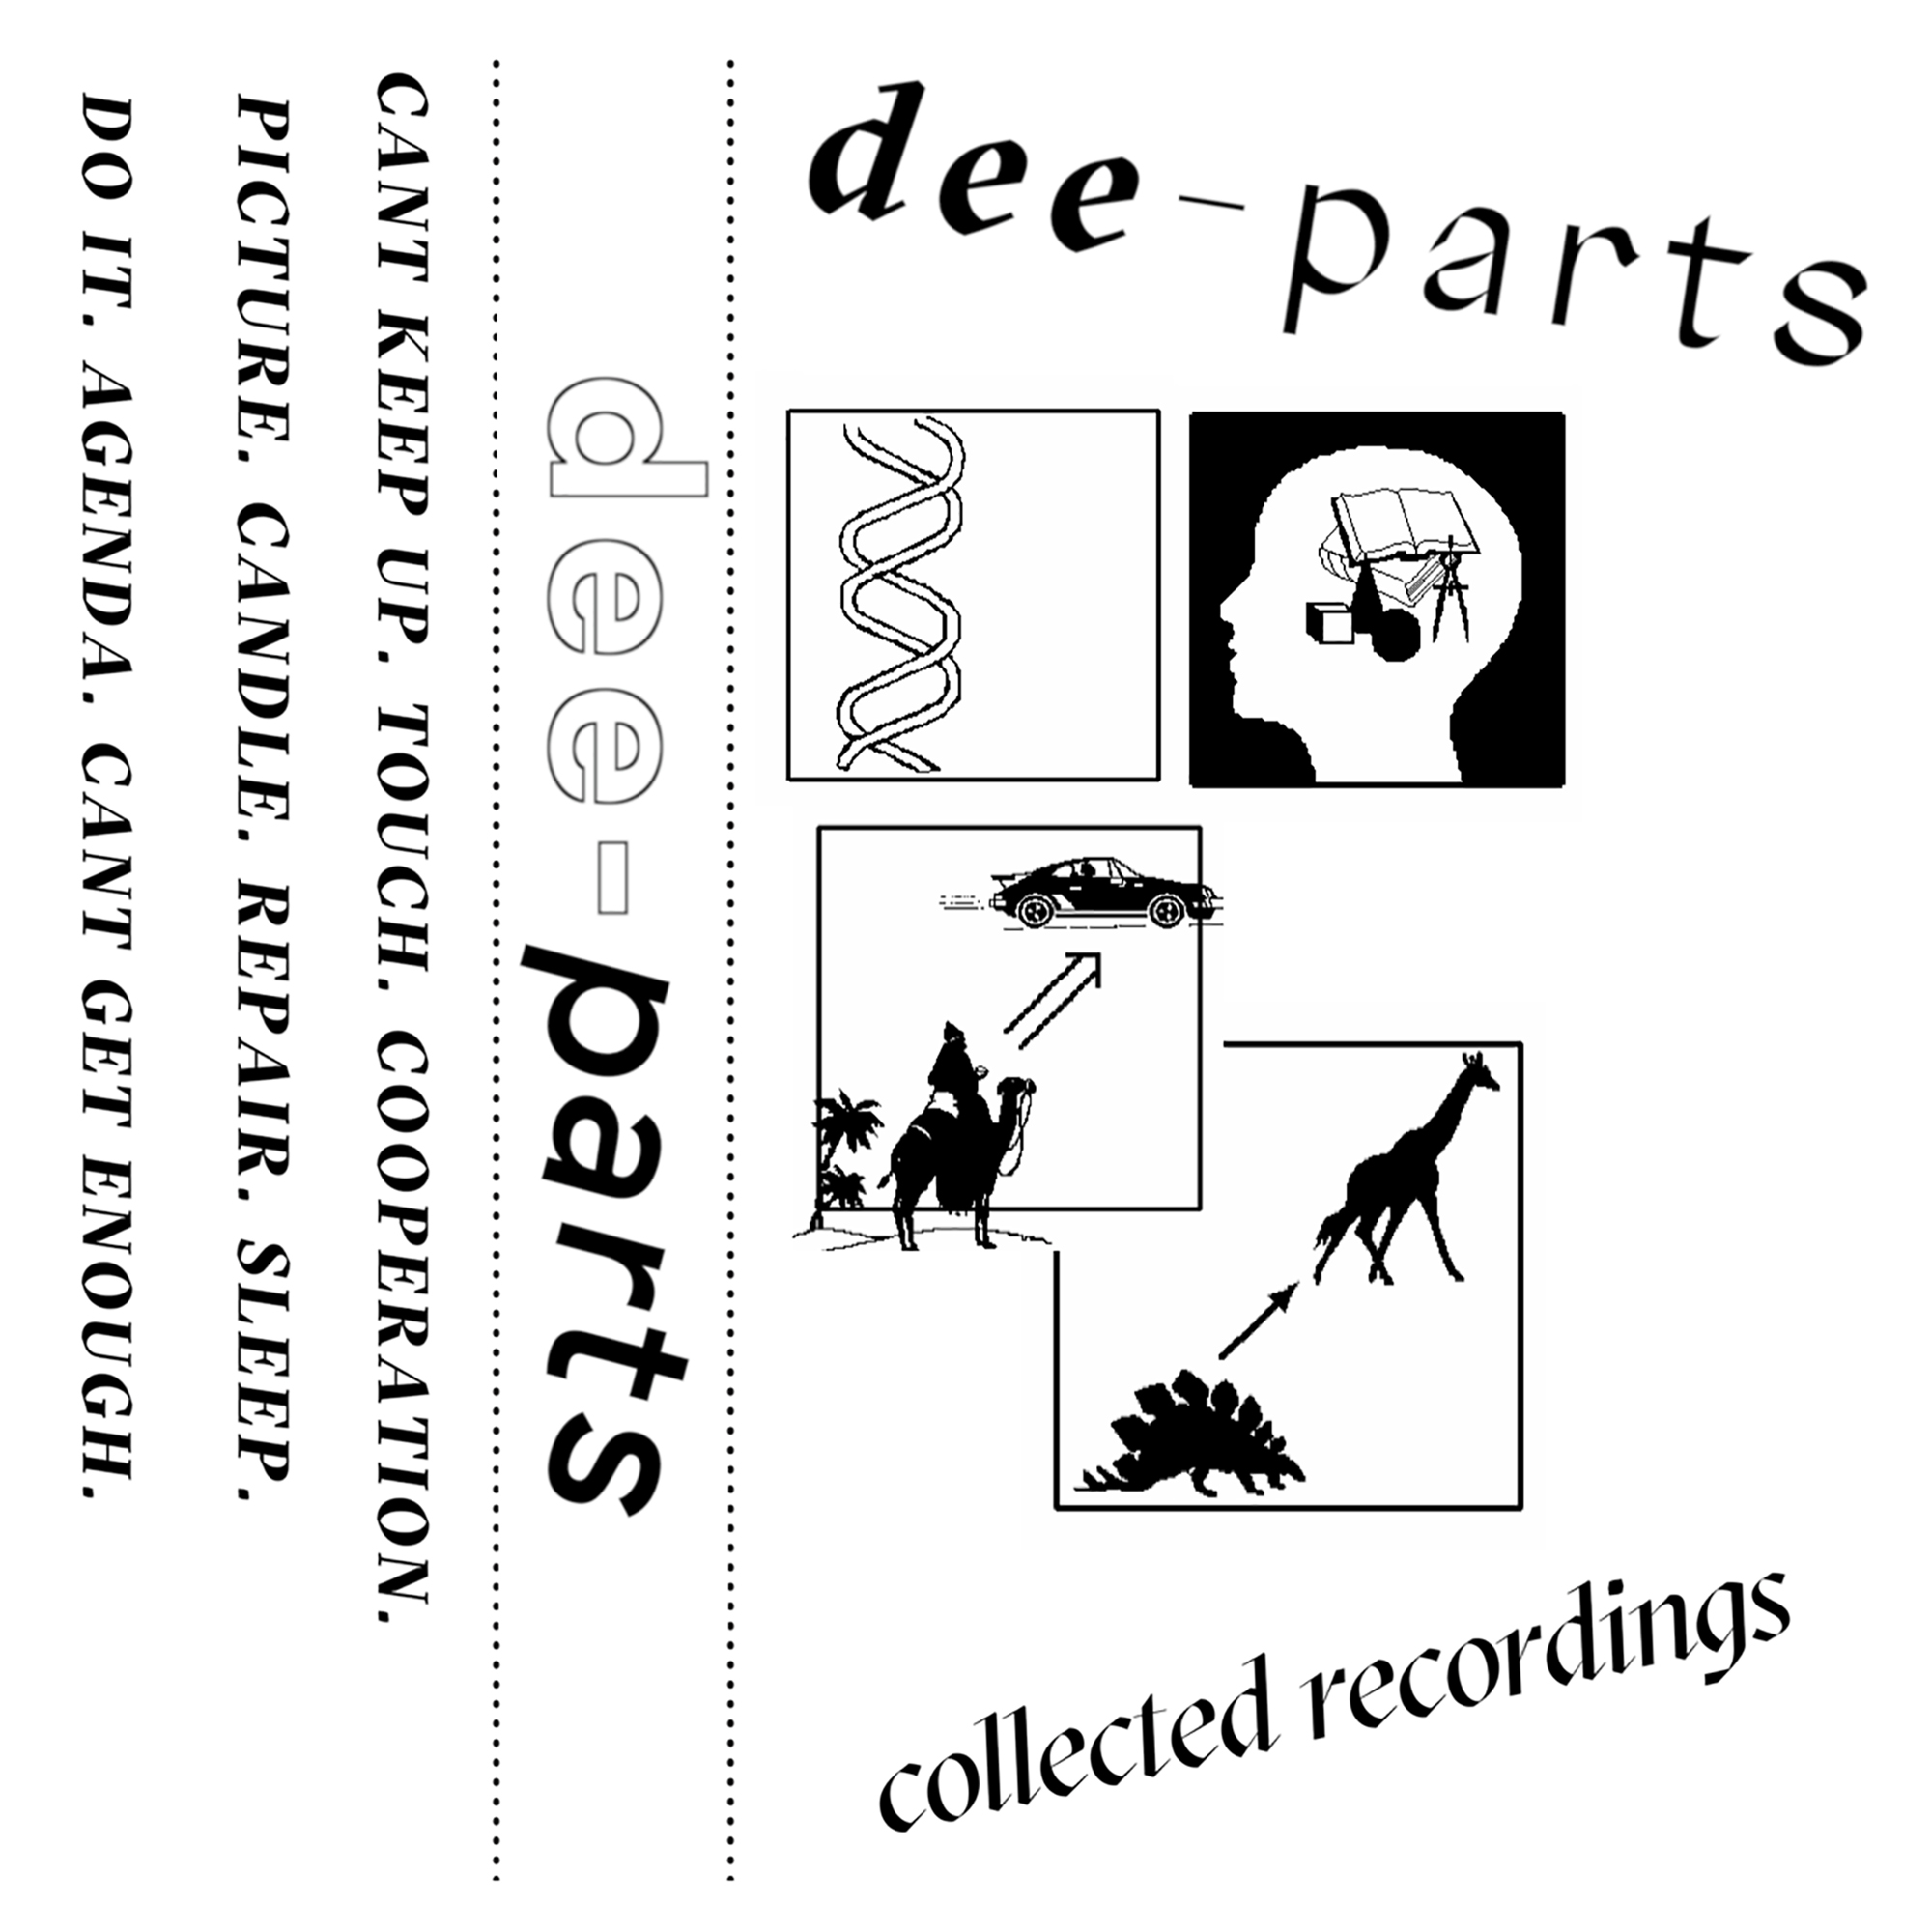 Dee-Parts   Collected Recordings